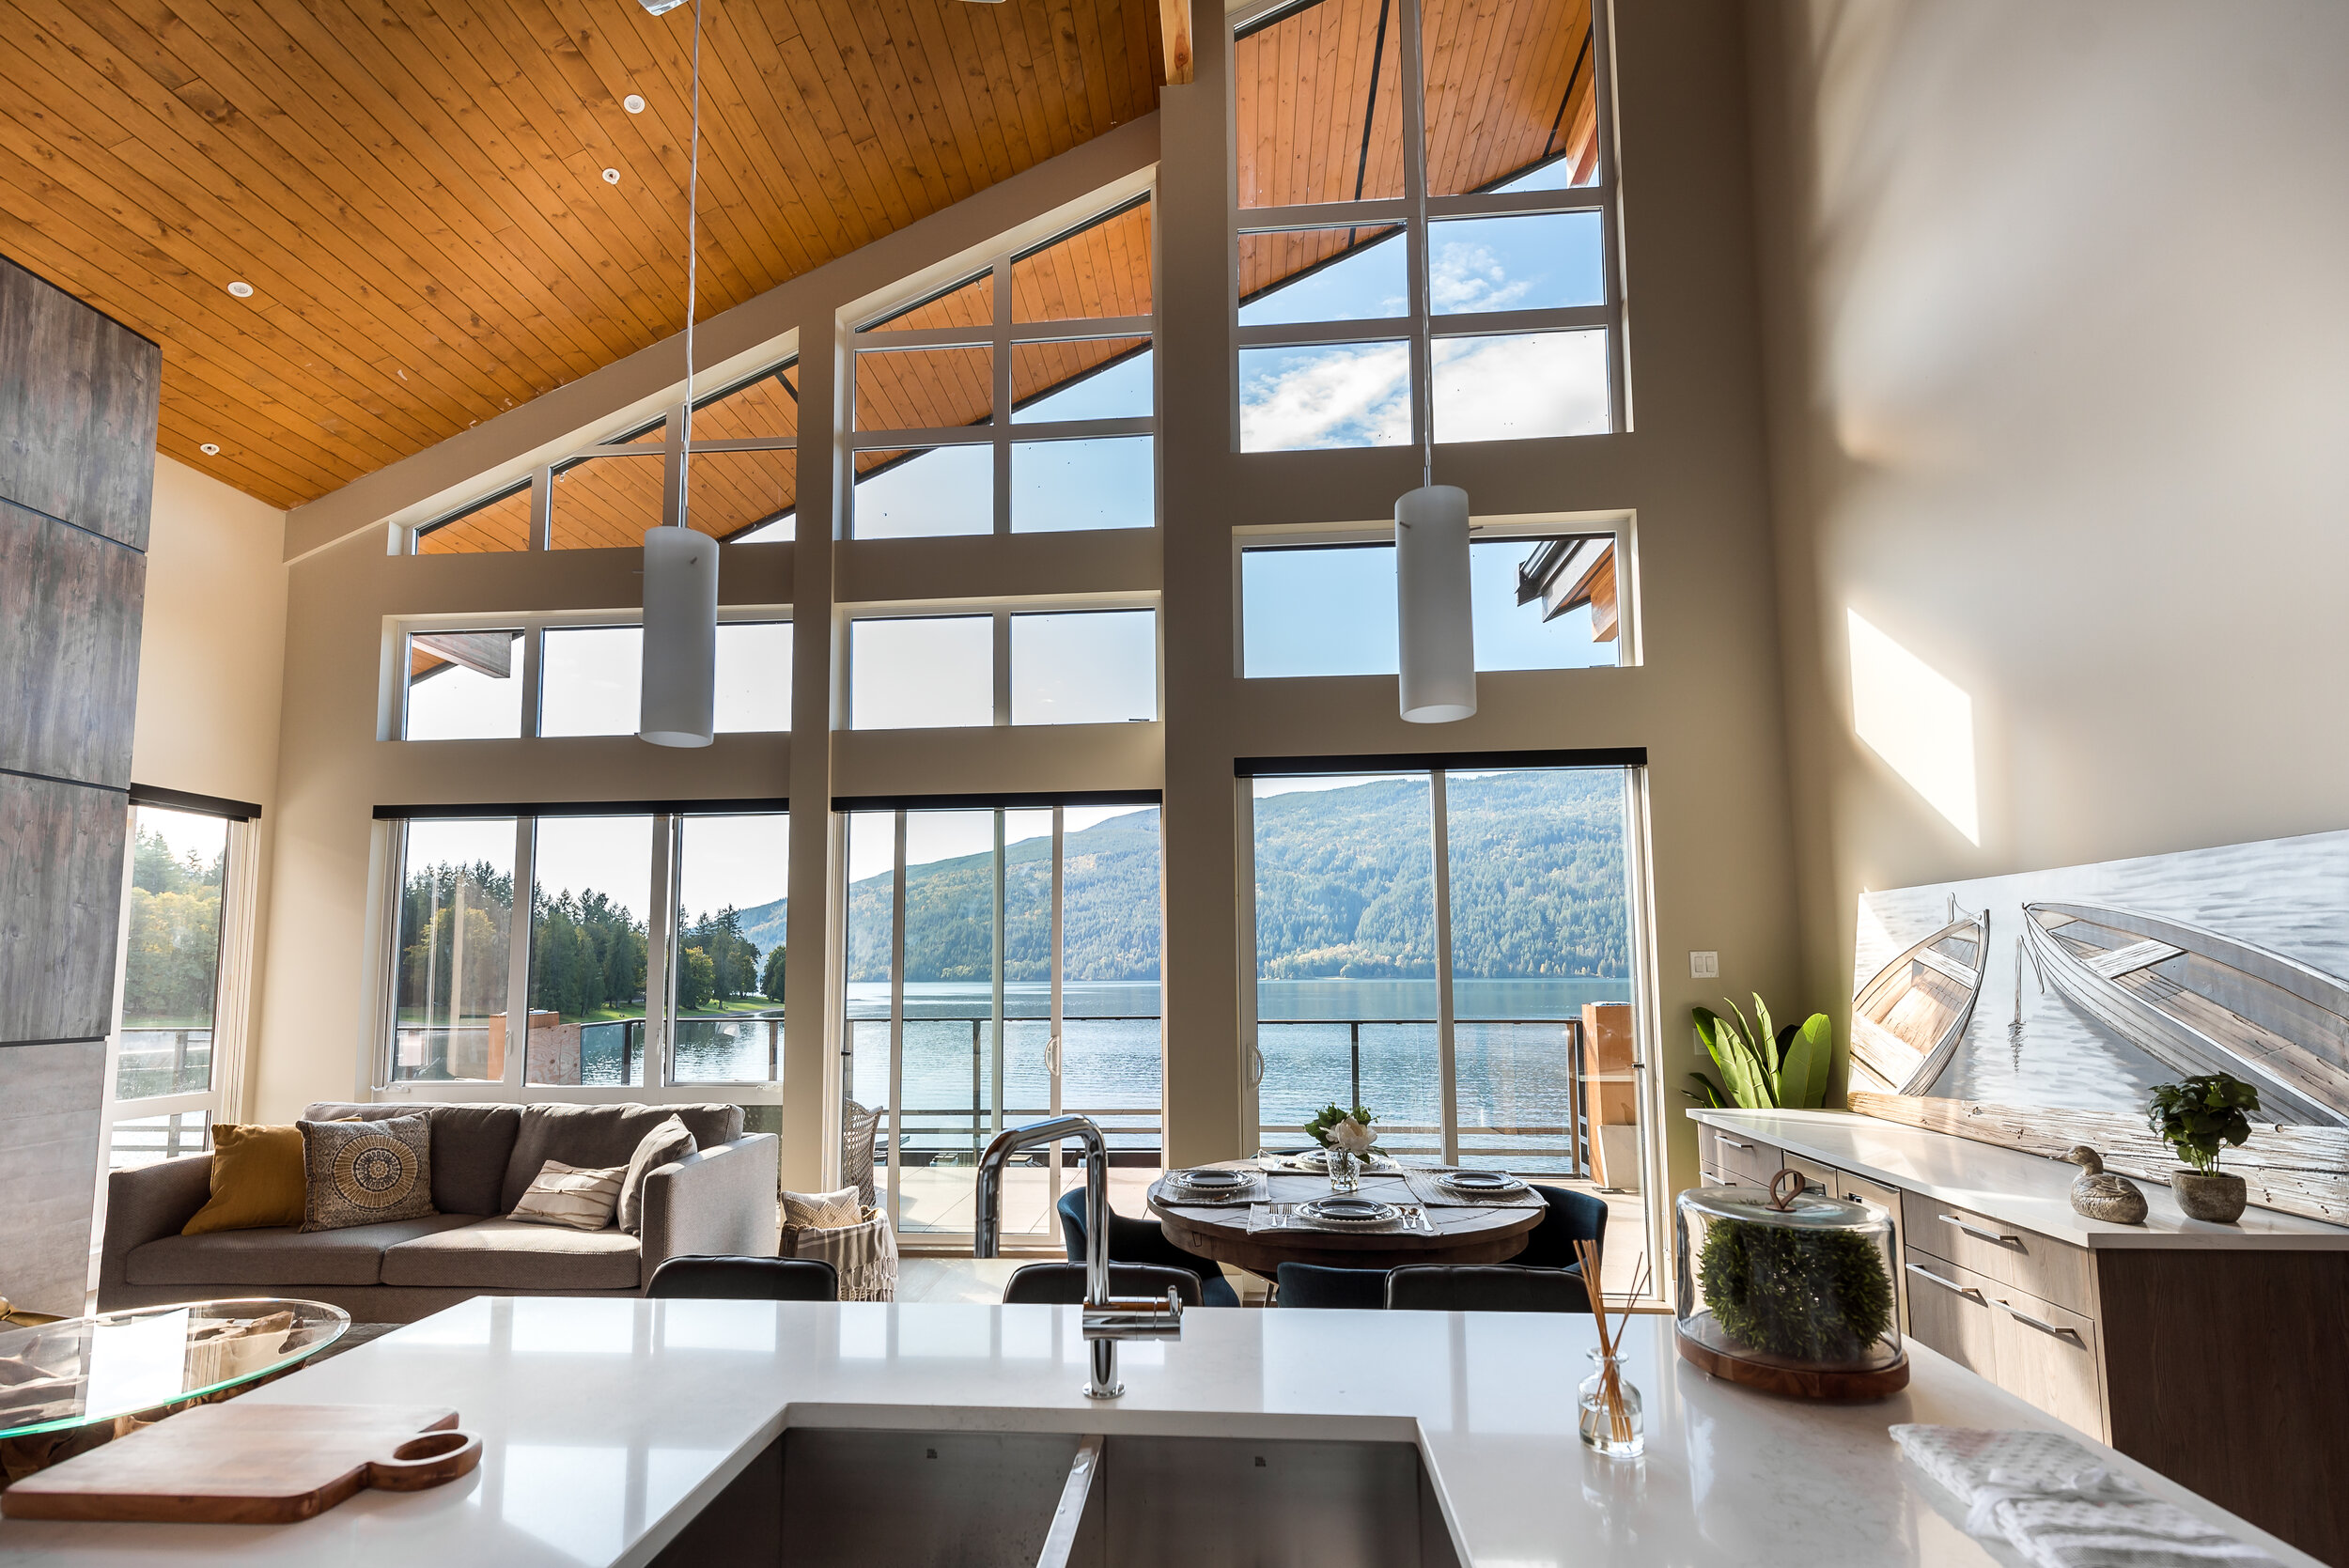 WINDOWS THAT ENHANCE THE VIEW